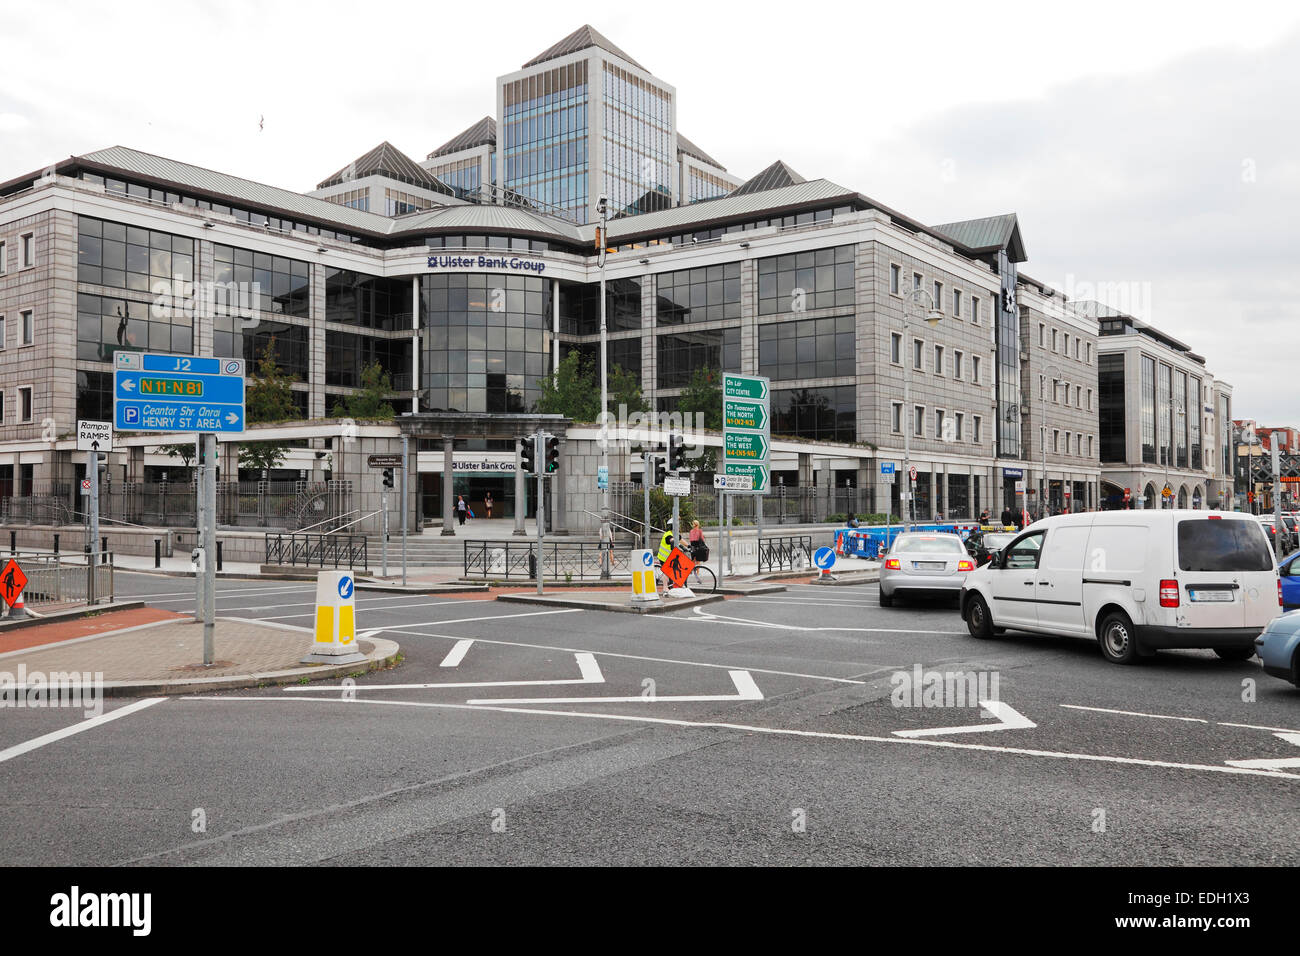 Ulster Bank Headquarters in Dublin - Stock Image